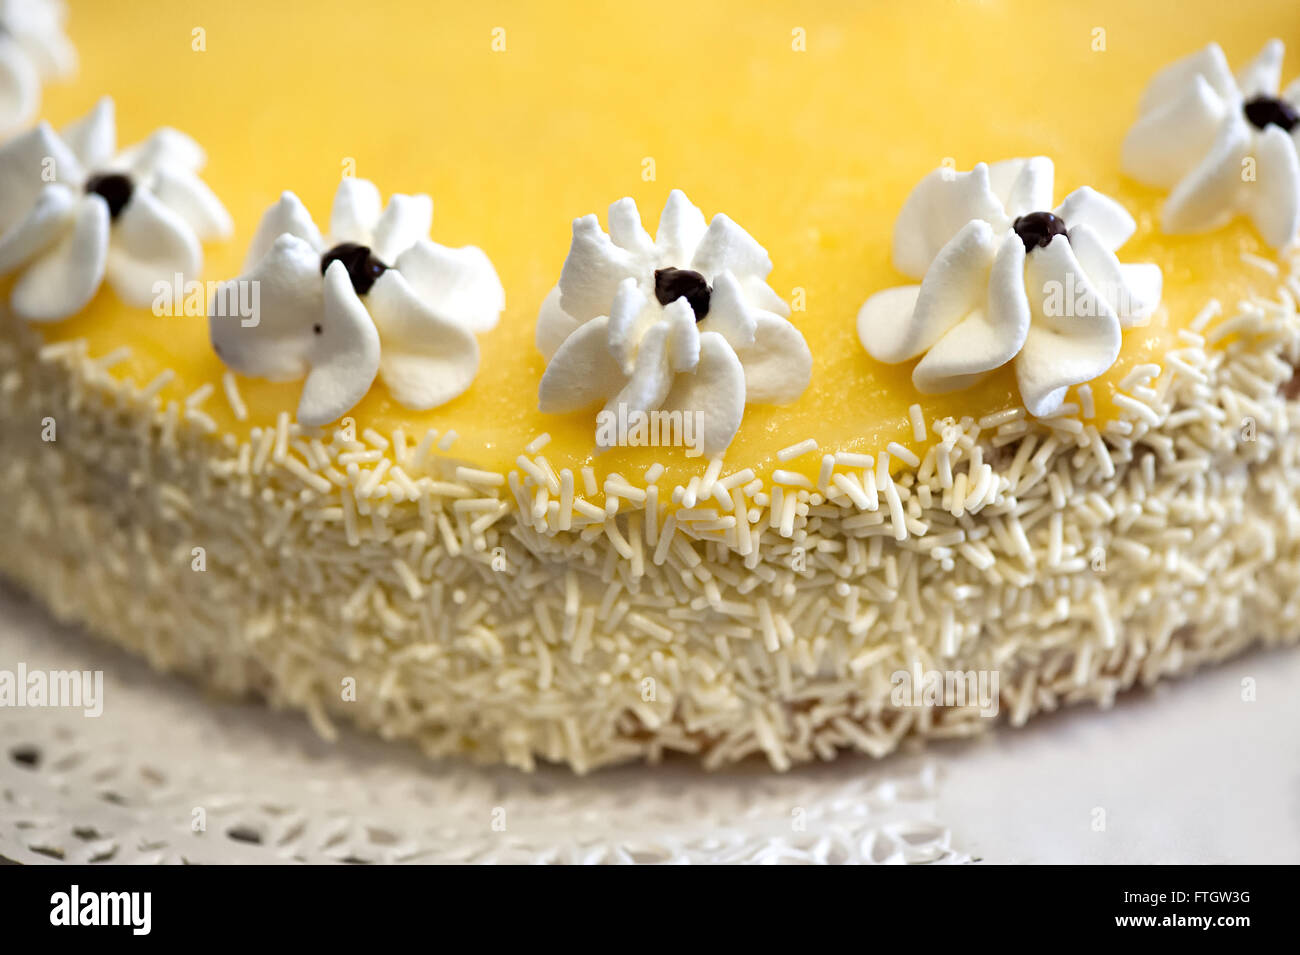 High Angle Close Up Culinary Still Life of Homemade Lemon Cake Decorated with Icing Flowers and Coconut Sprinkles - Stock Image